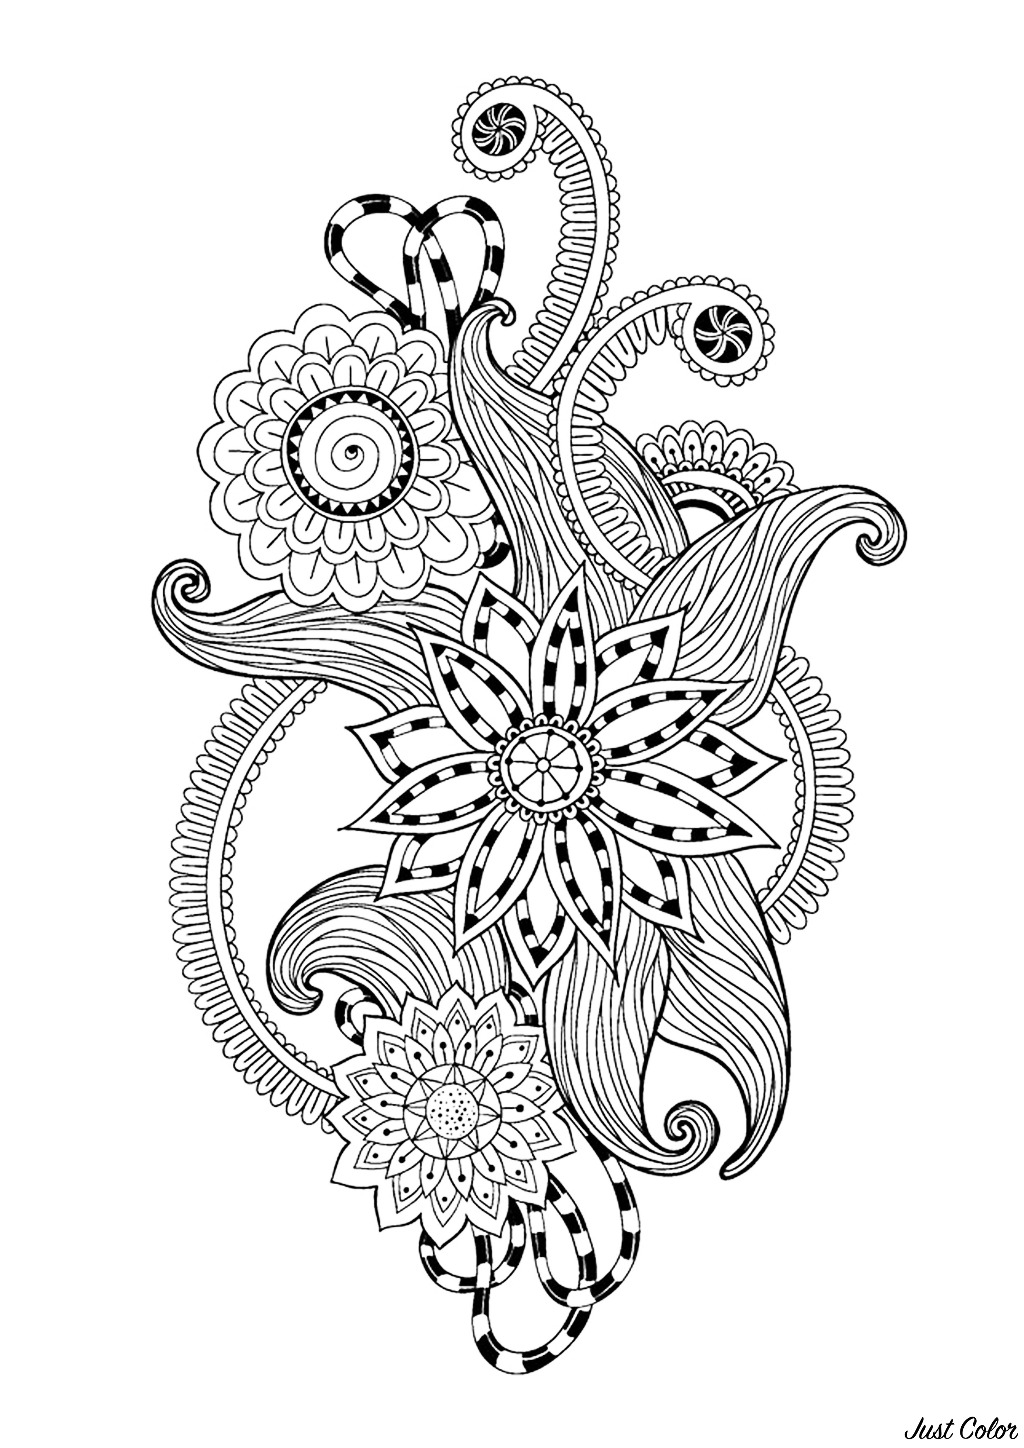 Zen & Anti-stress Coloring page : Abstract pattern inspired by flowers : n°12